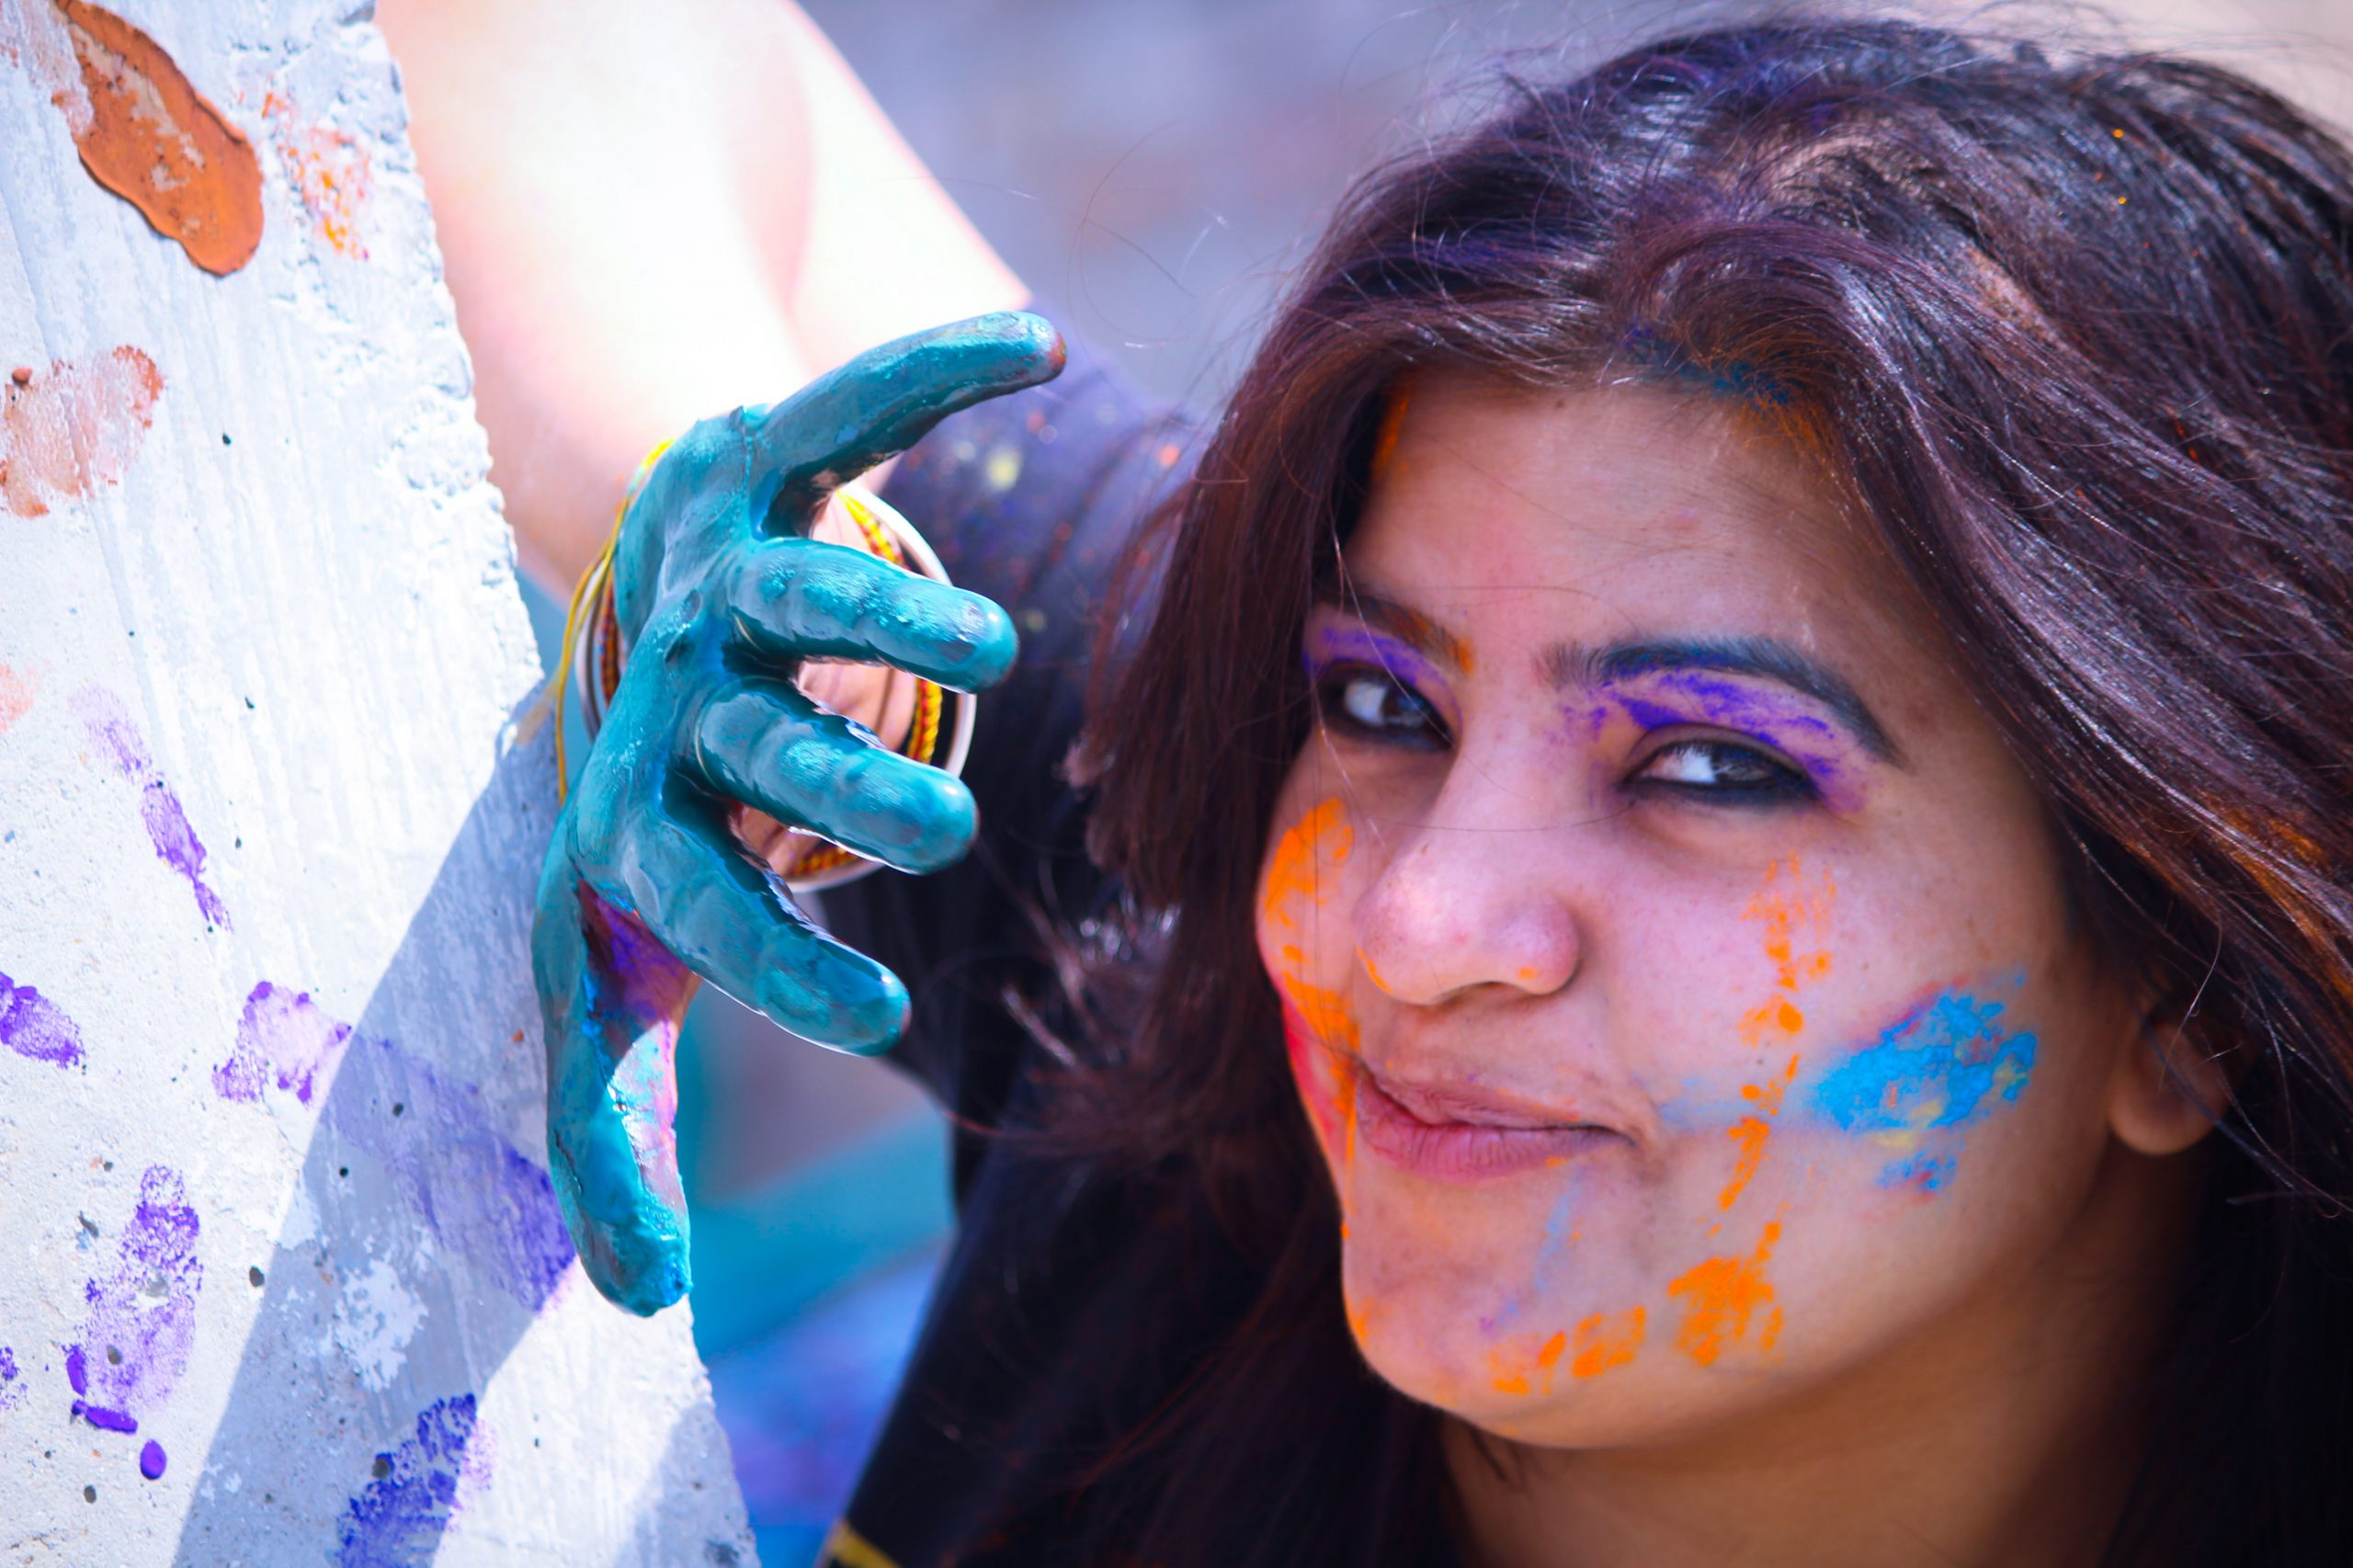 A happy girl during Holi festival